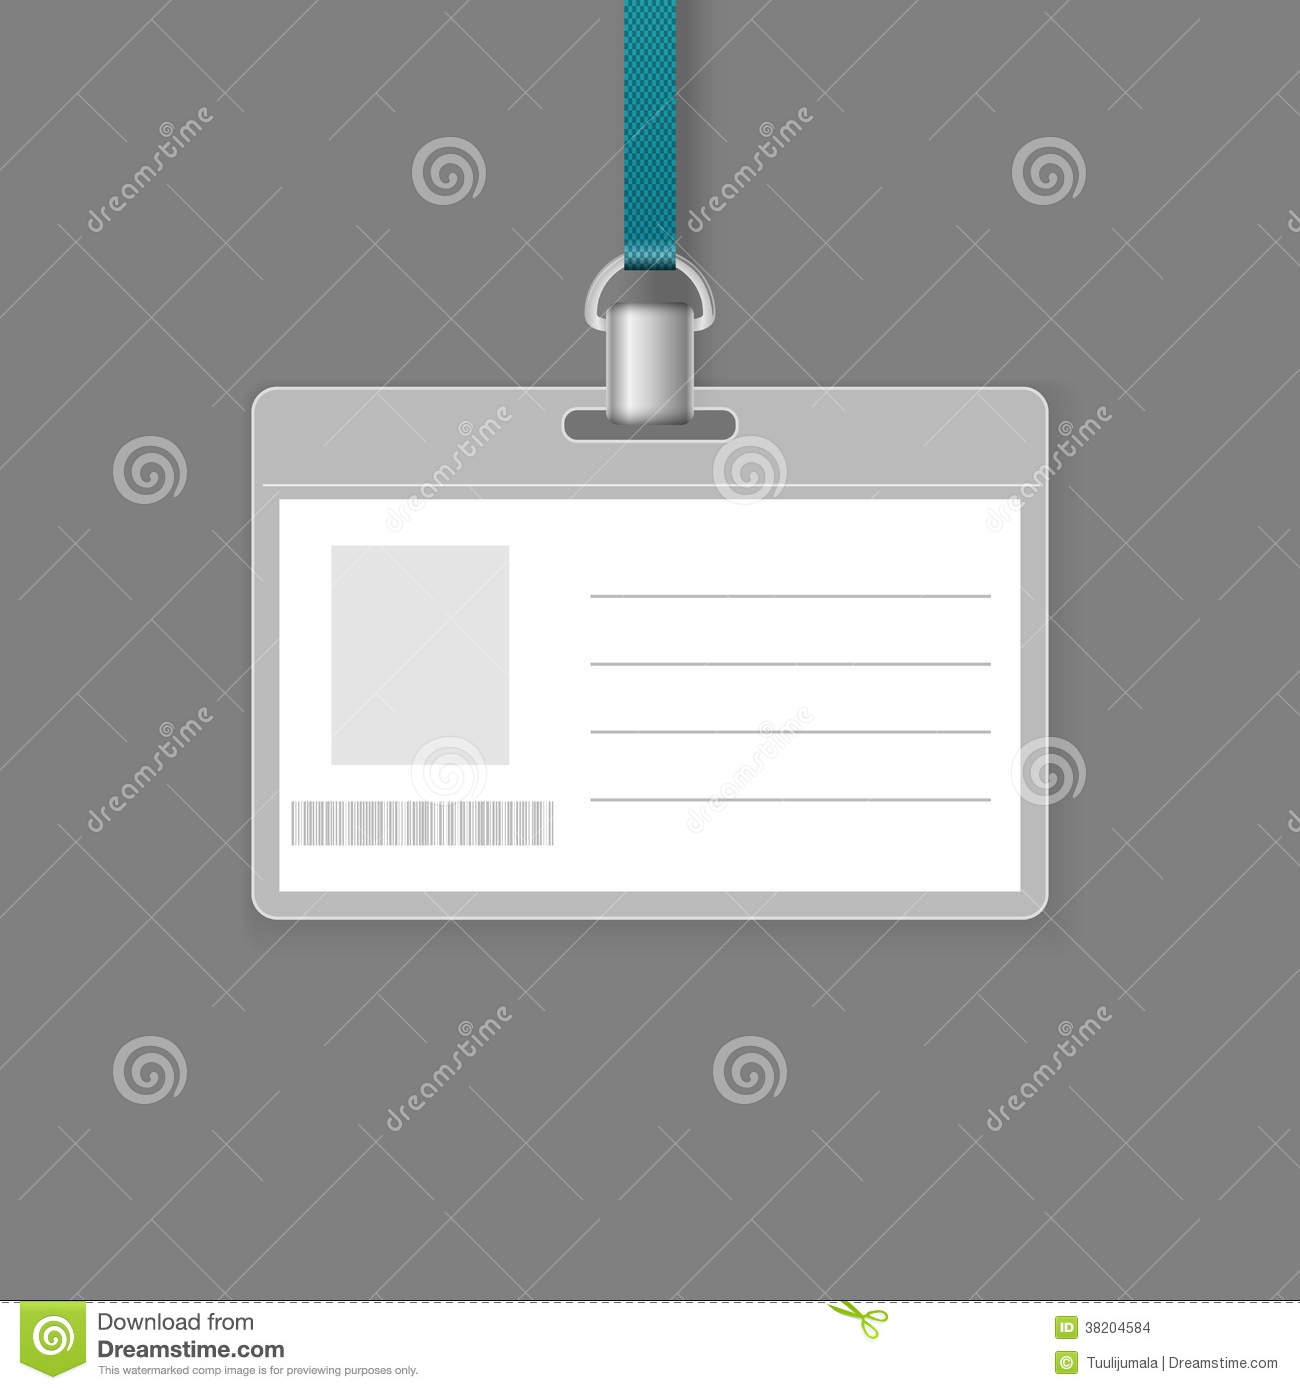 Blank ID badge template isolated on grey background.